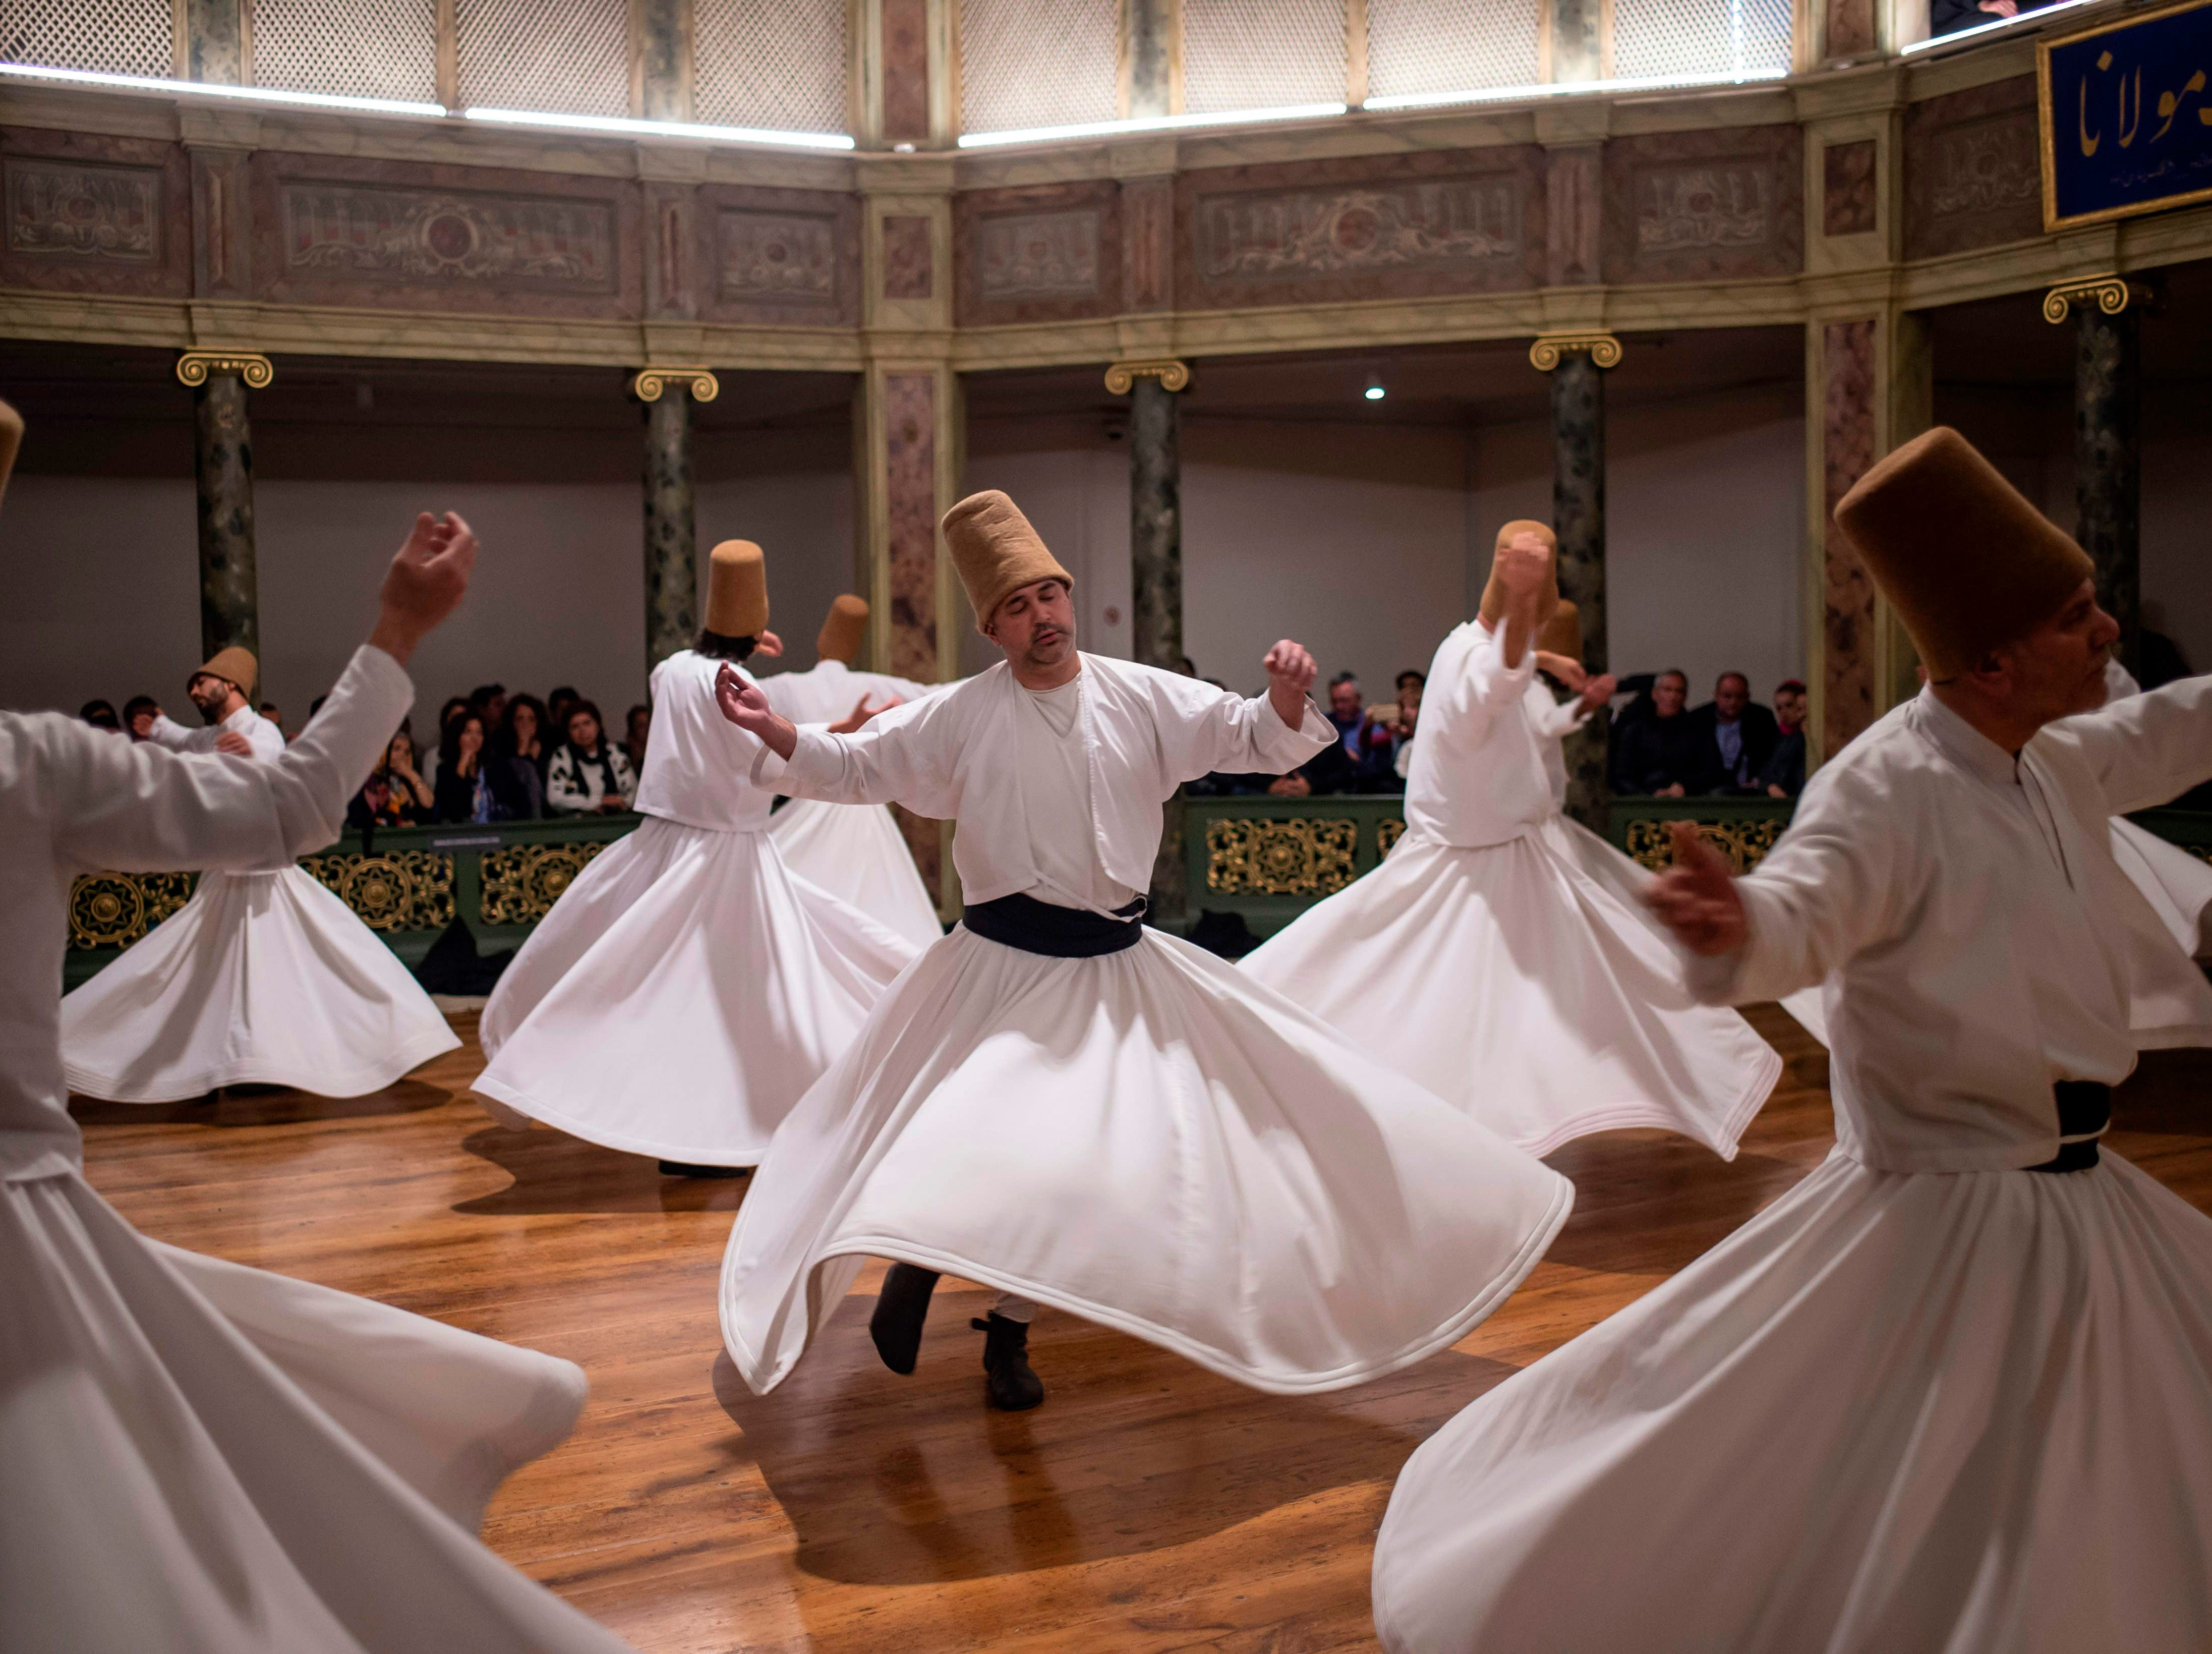 Dec. 16, 2018: Whirling dervishes perform during a ceremony marking the anniversary of the death of Jelaleddin Mevlana Rumi, Sufi mystic, poet and founder of the sufism at Galata Mevlihanesi in Istanbul. The dervishes are adepts of Sufism, a mystical form of Islam that preaches tolerance and a search for understanding. Those who whirl, like planets around the sun, turn dance into a form of prayer.